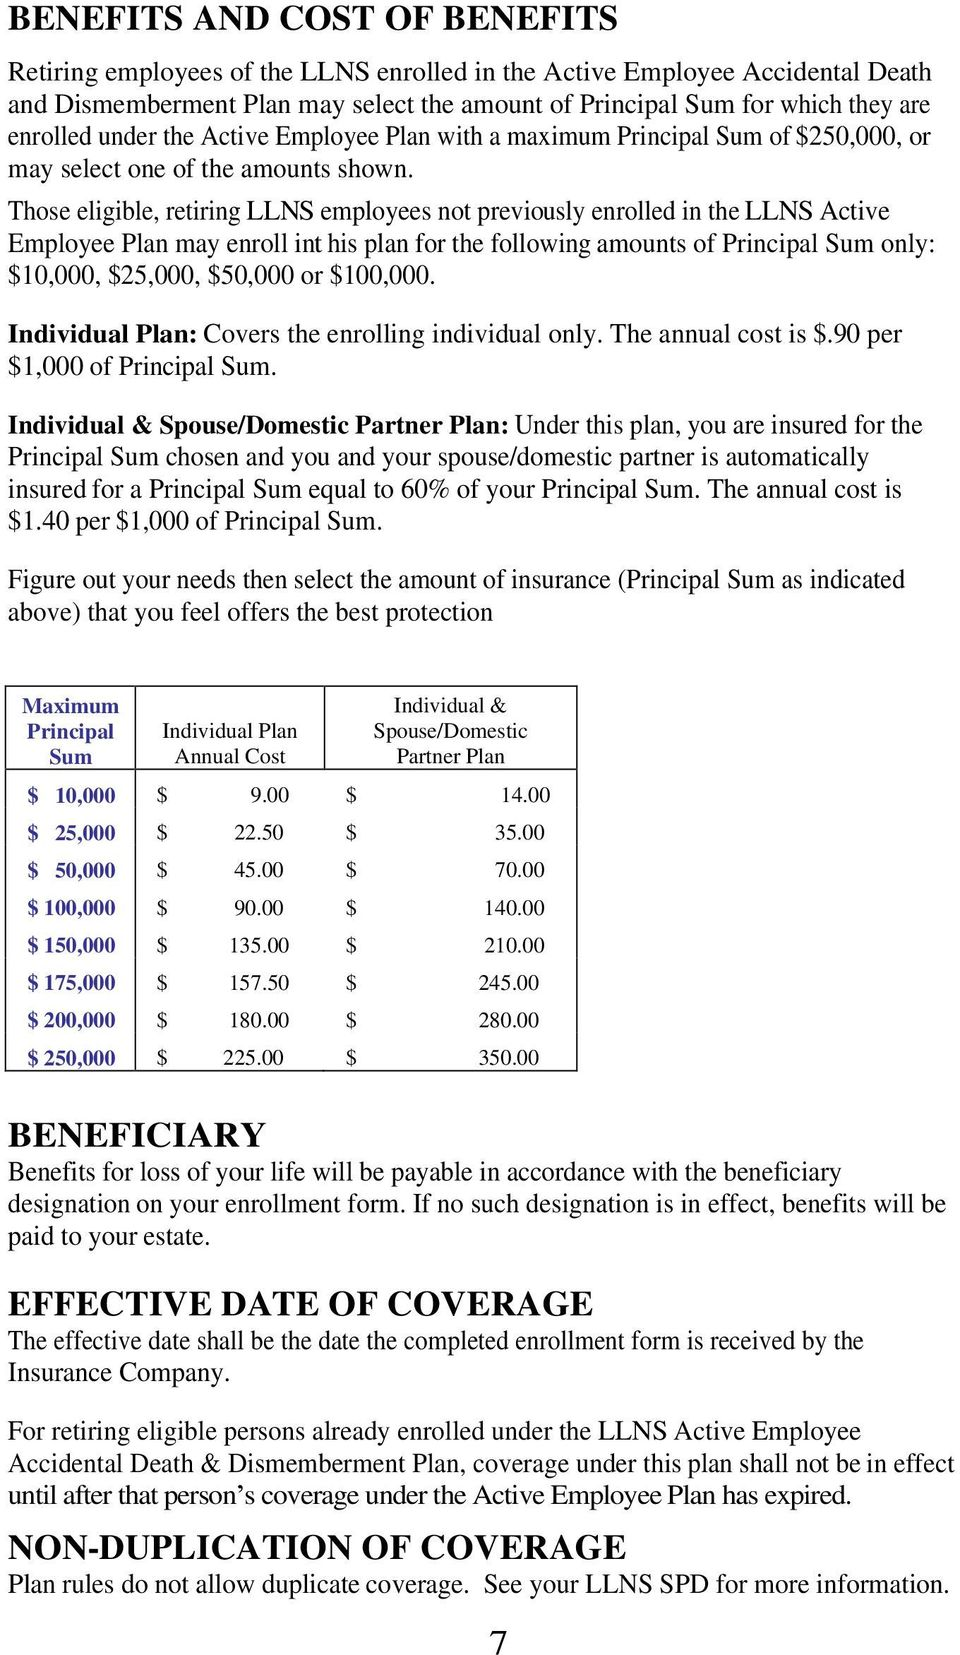 Those eligible, retiring LLNS employees not previously enrolled in the LLNS Active Employee Plan may enroll int his plan for the following amounts of Principal Sum only: $10,000, $25,000, $50,000 or